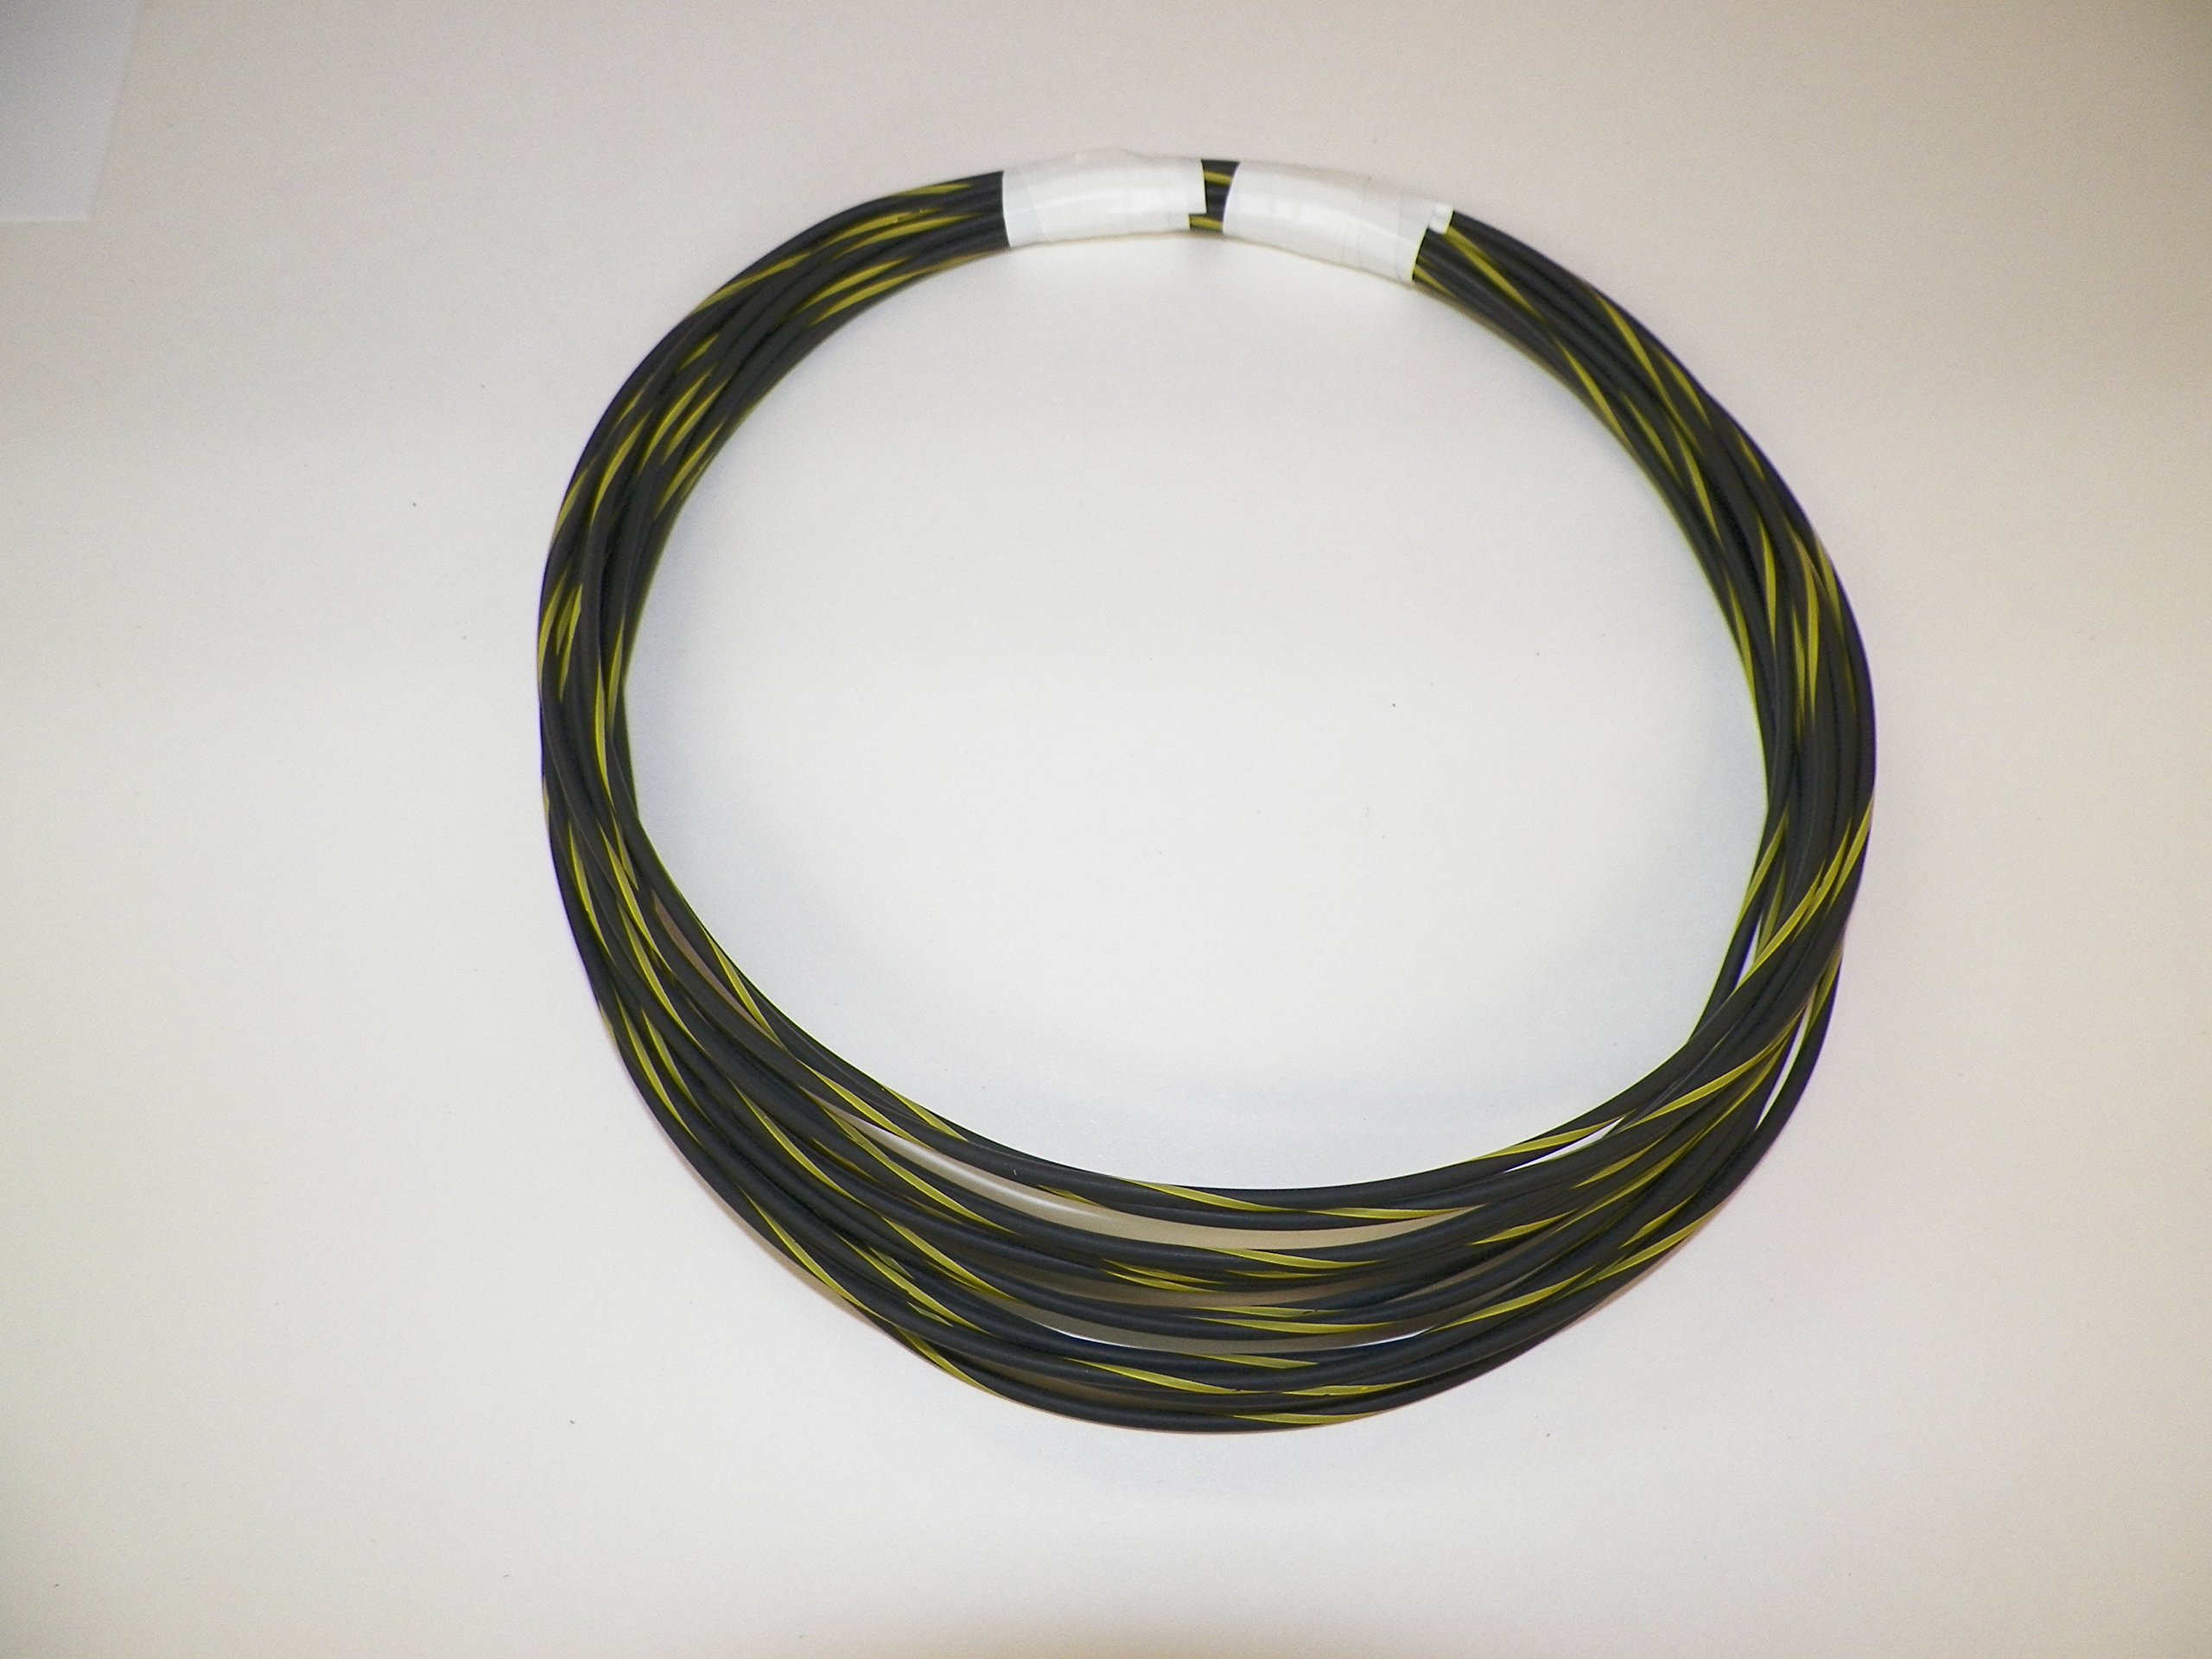 18 Ga Awg black/yellow Striped Automotive/General Purpose GXL Wire .94 O.D. 25' Superior Abrasion Resistance, High Heat, Resist grease,Oil, Gasoline,Acids